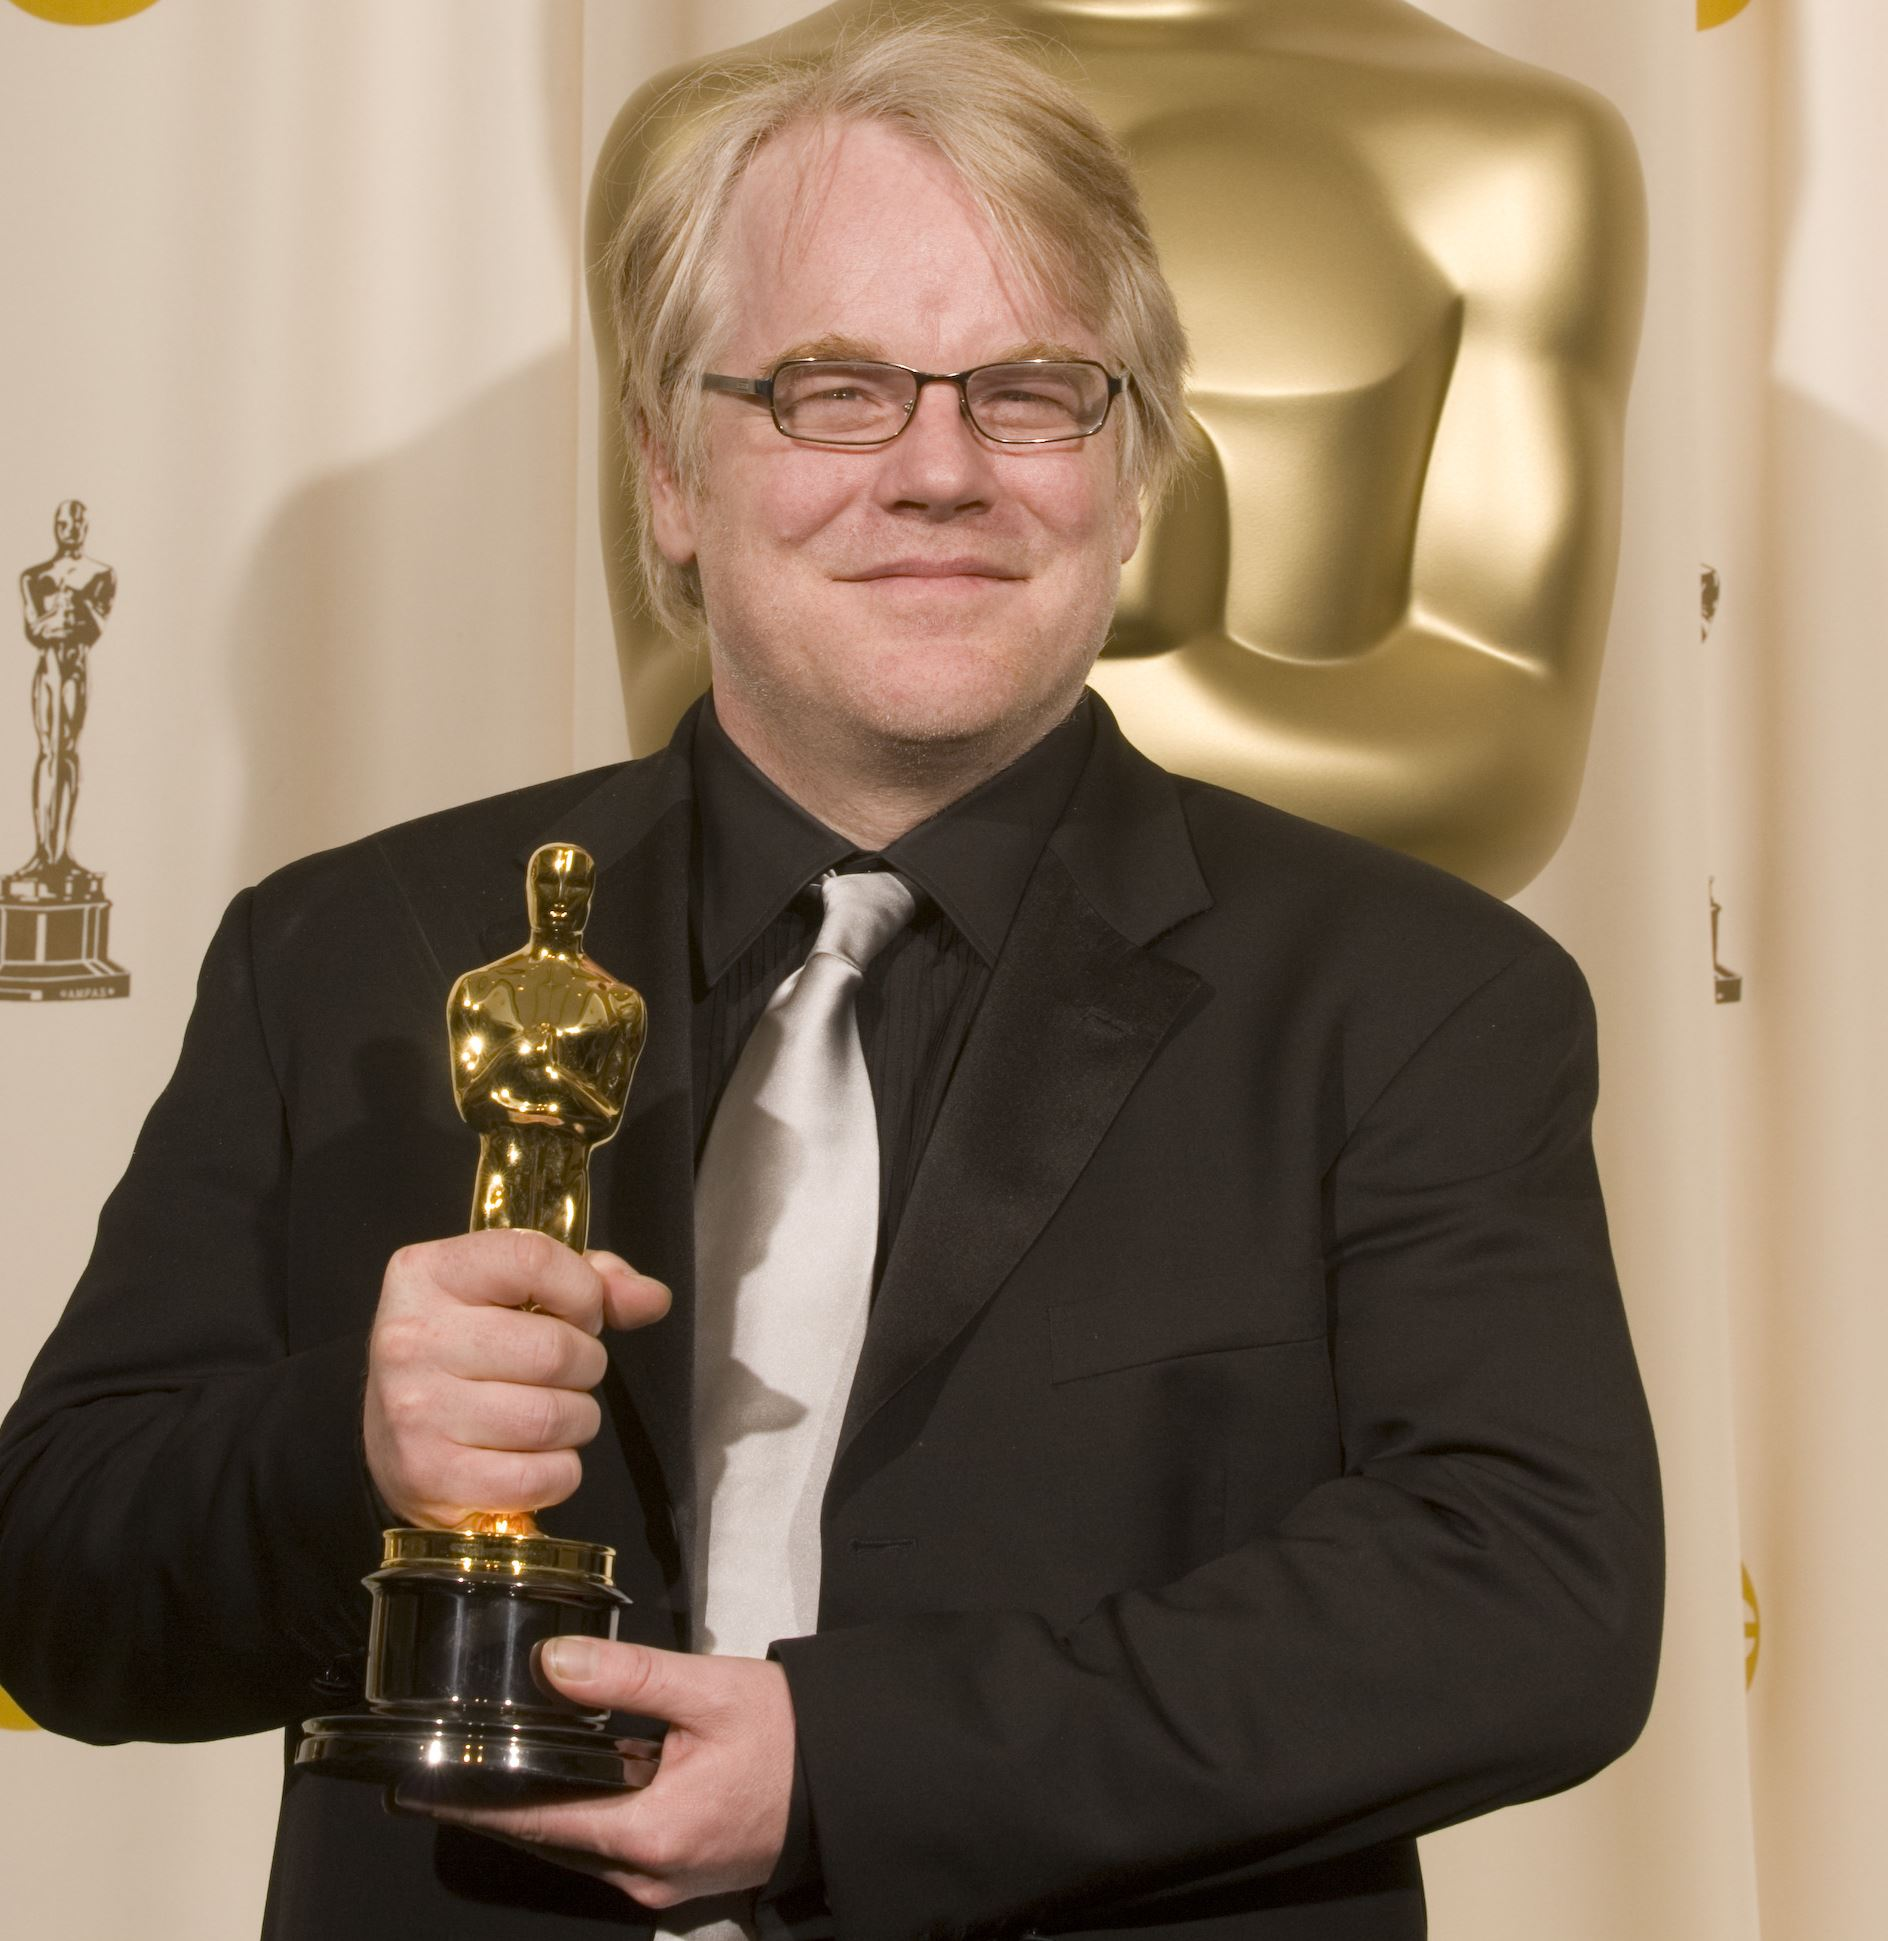 Philip Seymour Hoffman For mobile